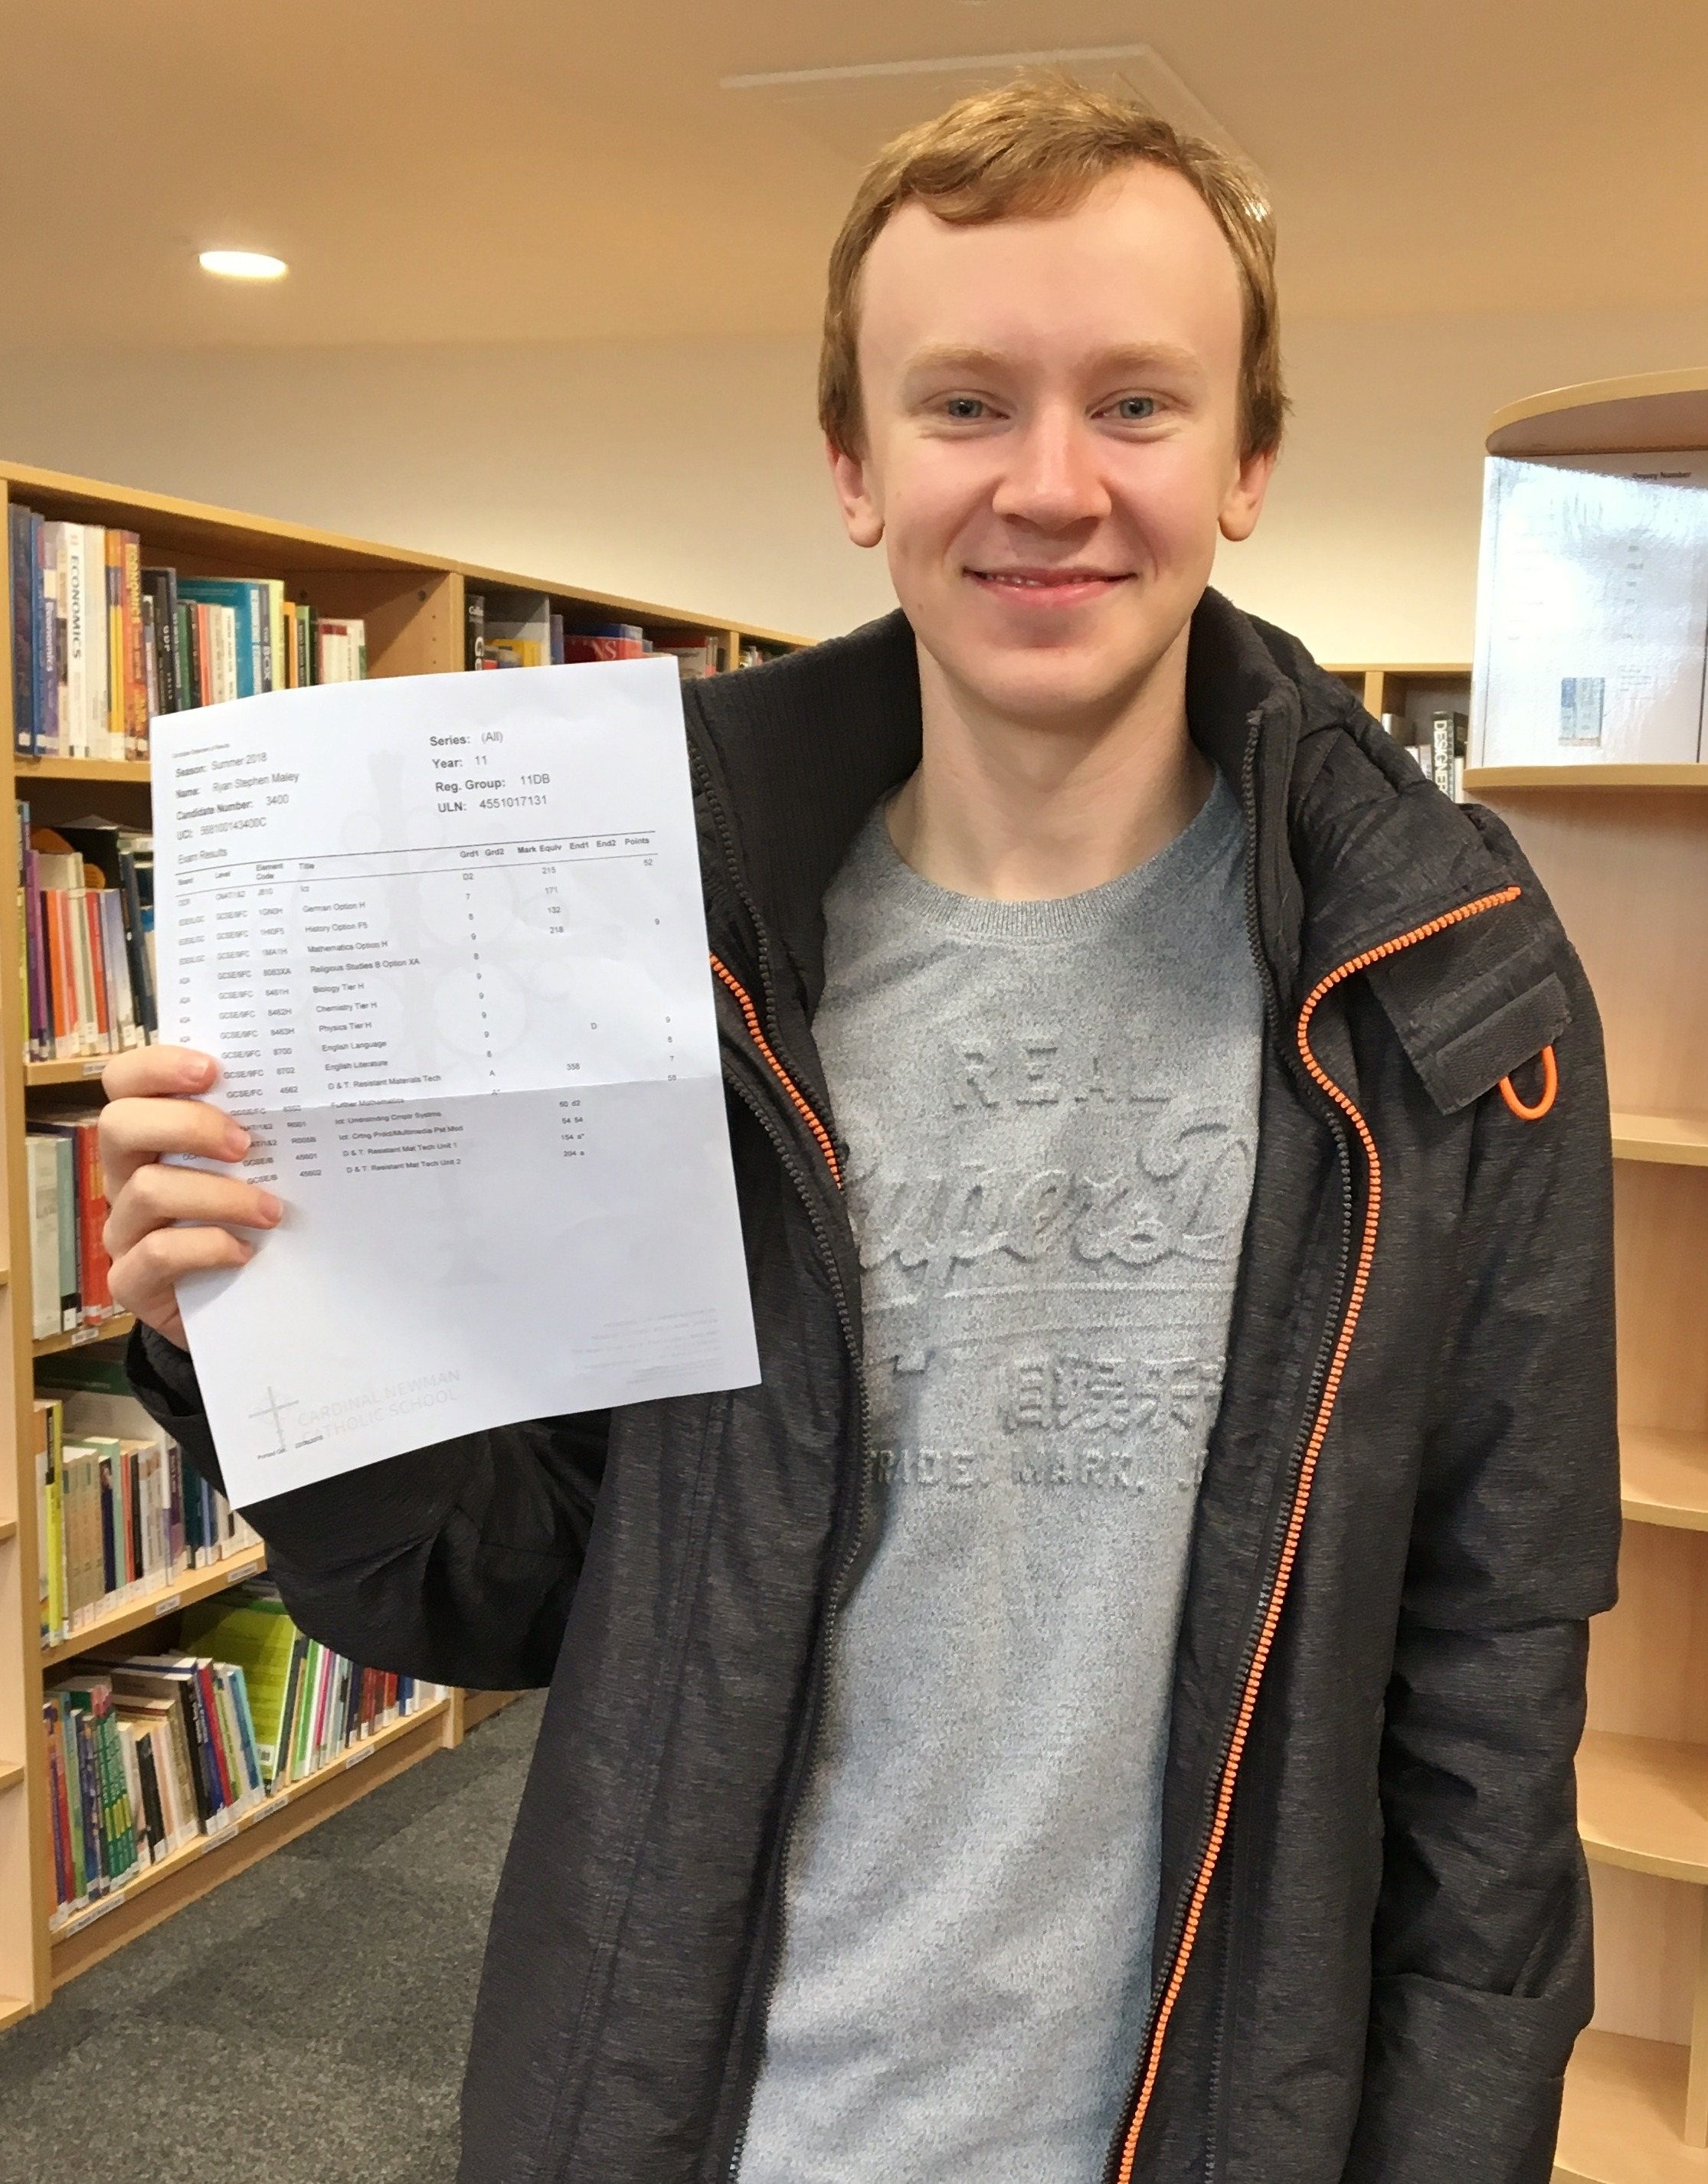 Ryan MAley - 11 GCSEs, five at Grade 9, three at Grade 8, one at Grade 7, an A* and an A